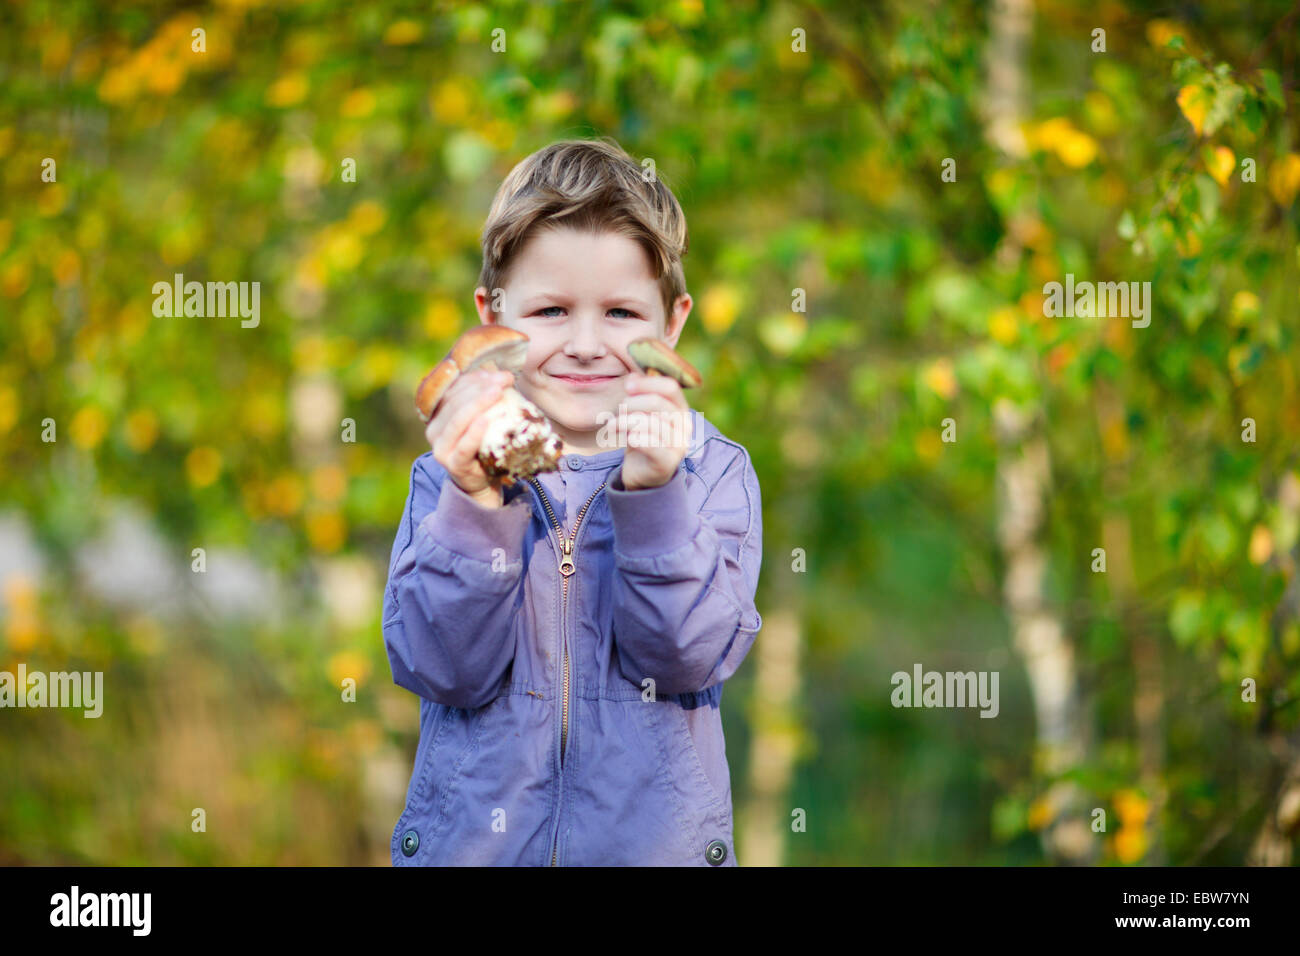 a little boy showing two wild mushrooms - Stock Image